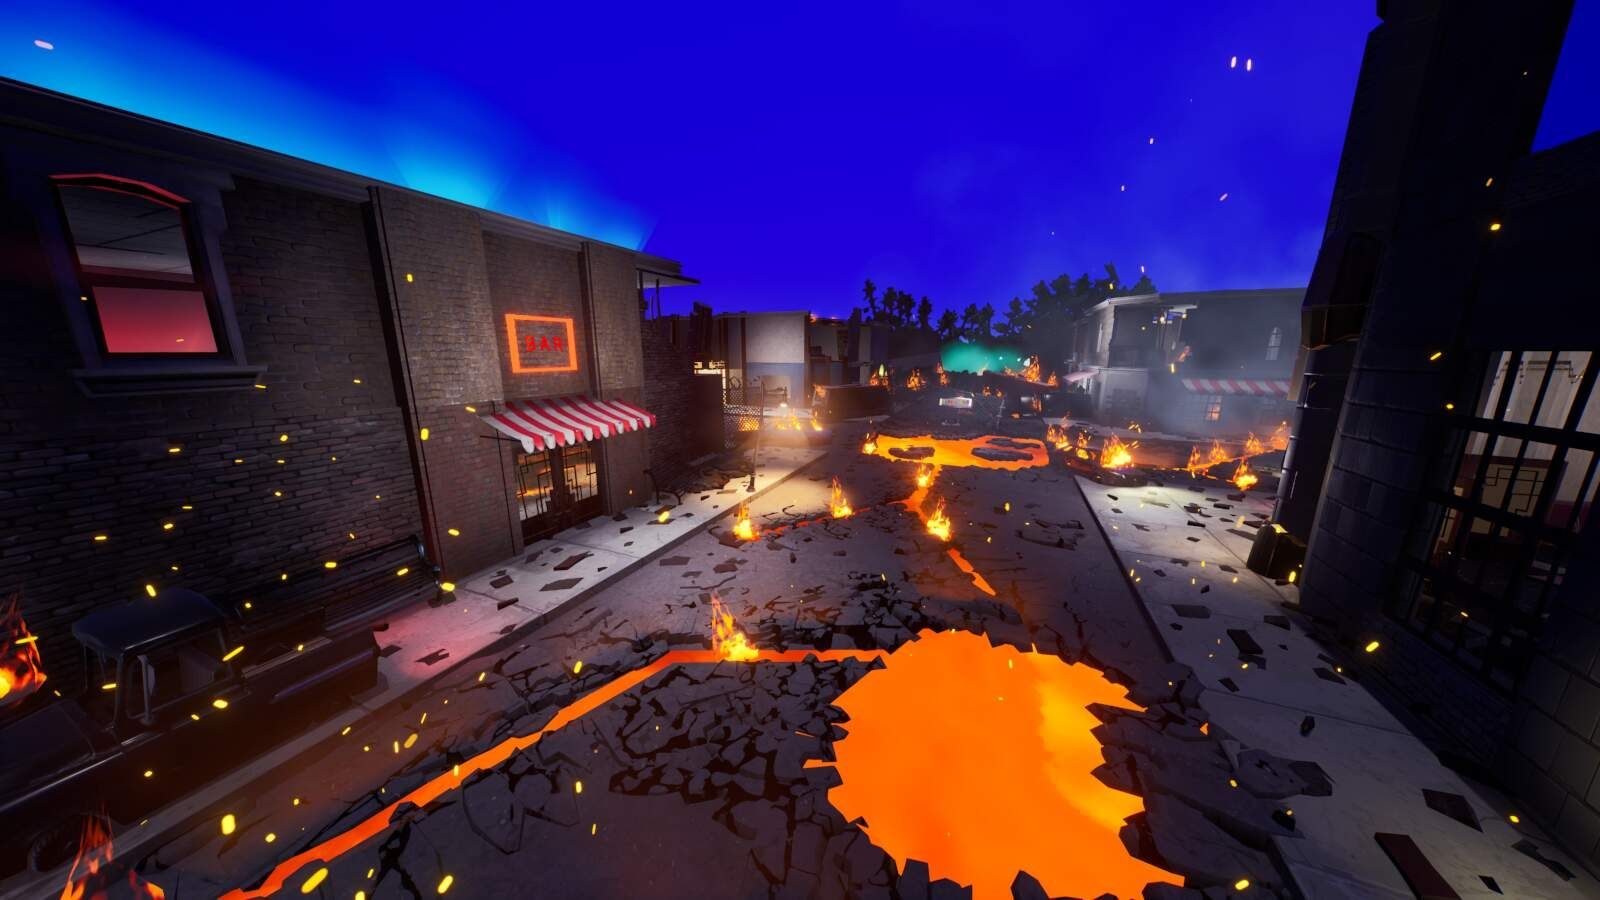 Fortnite Creative Zombie Survival Cod Zombies Town V3 2 9664 9557 2738 By Mist Jawafett Fortnite